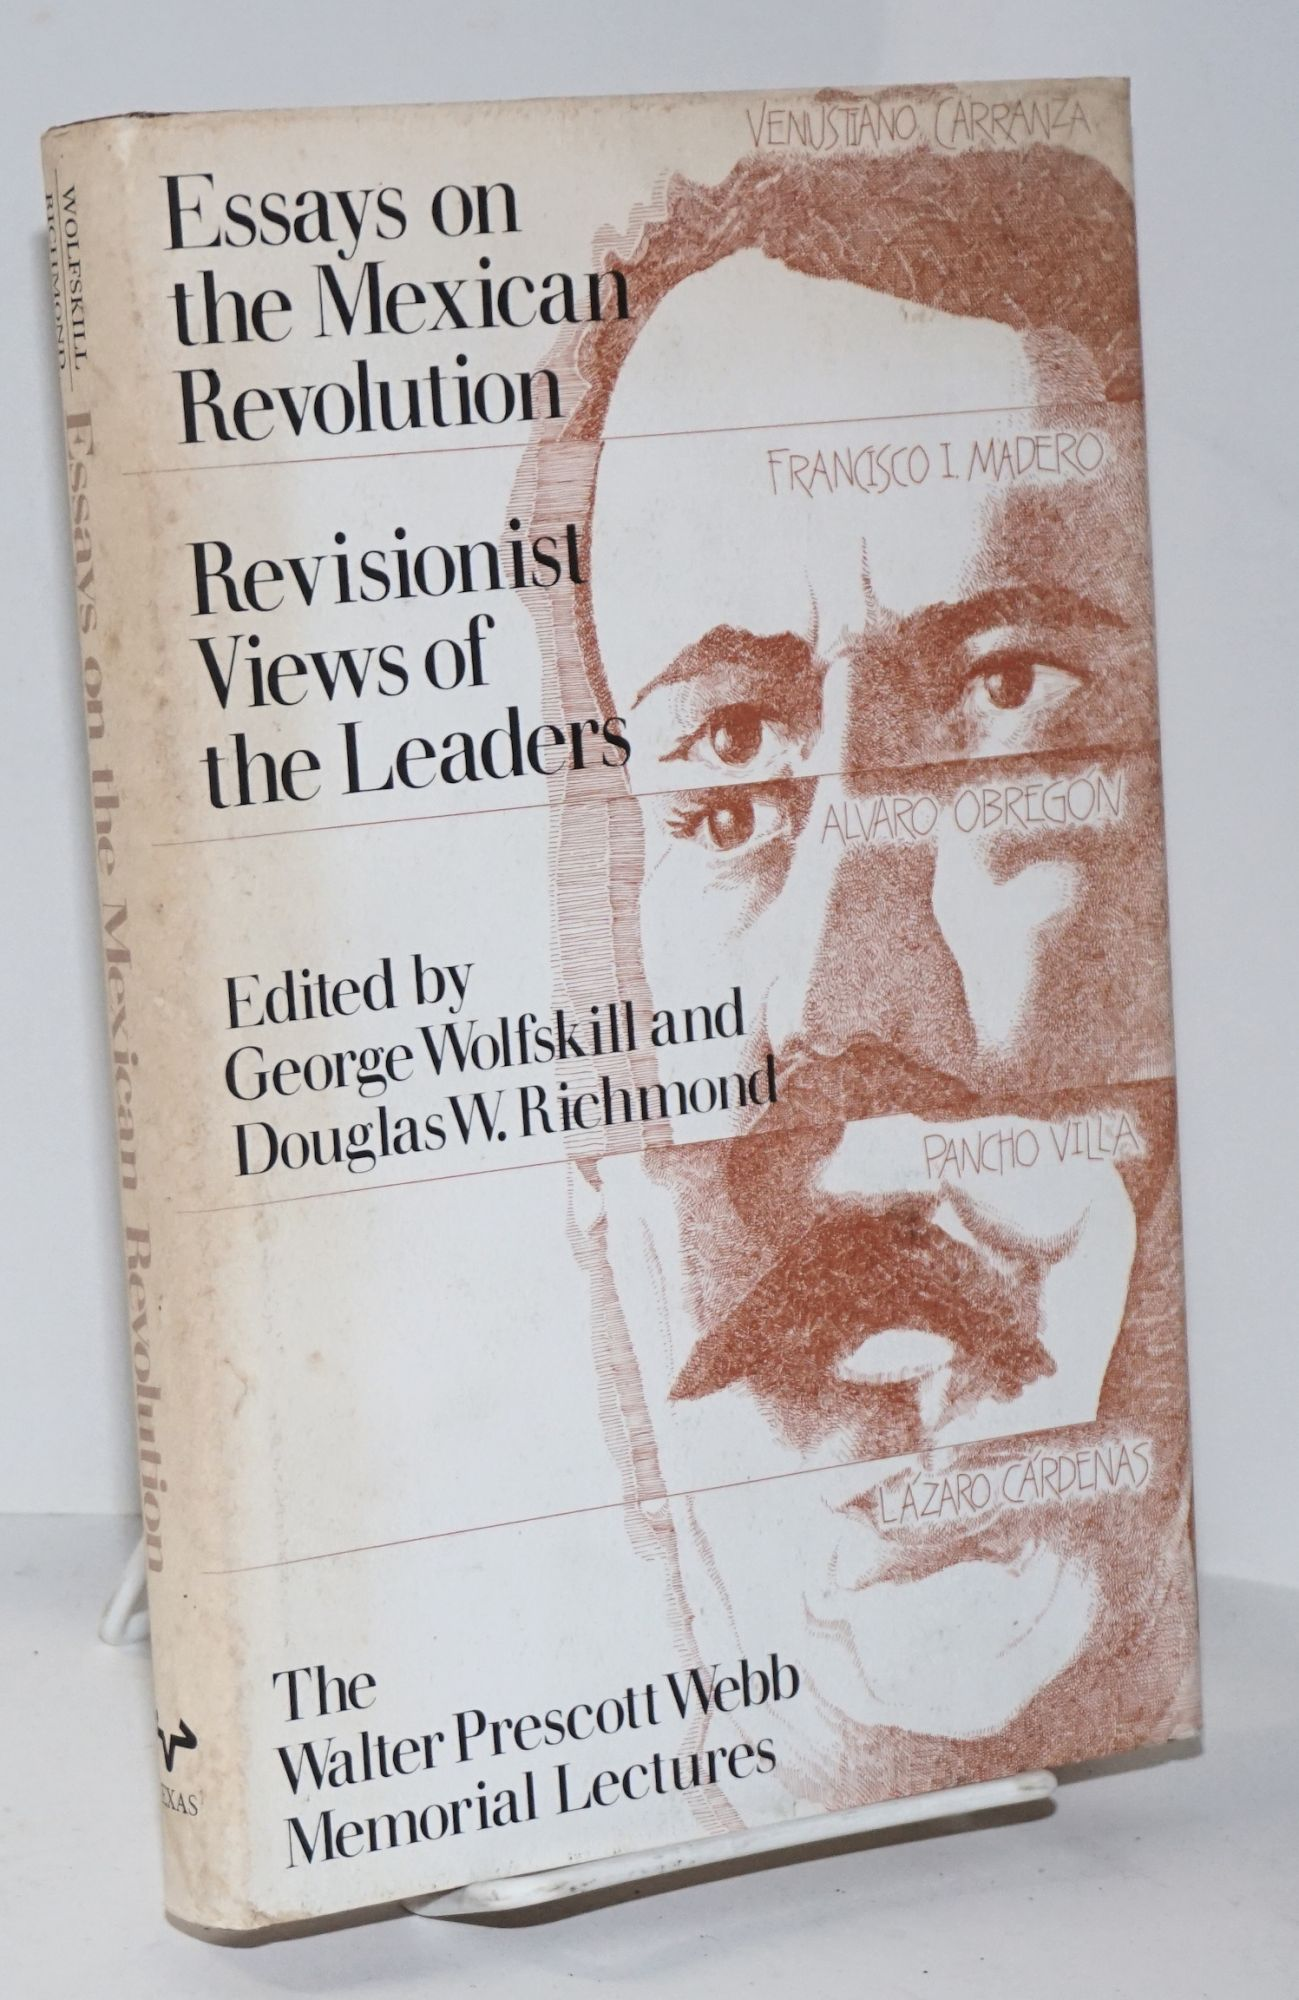 essays on the mexican revolution revisionist views of the leaders  essays on the mexican